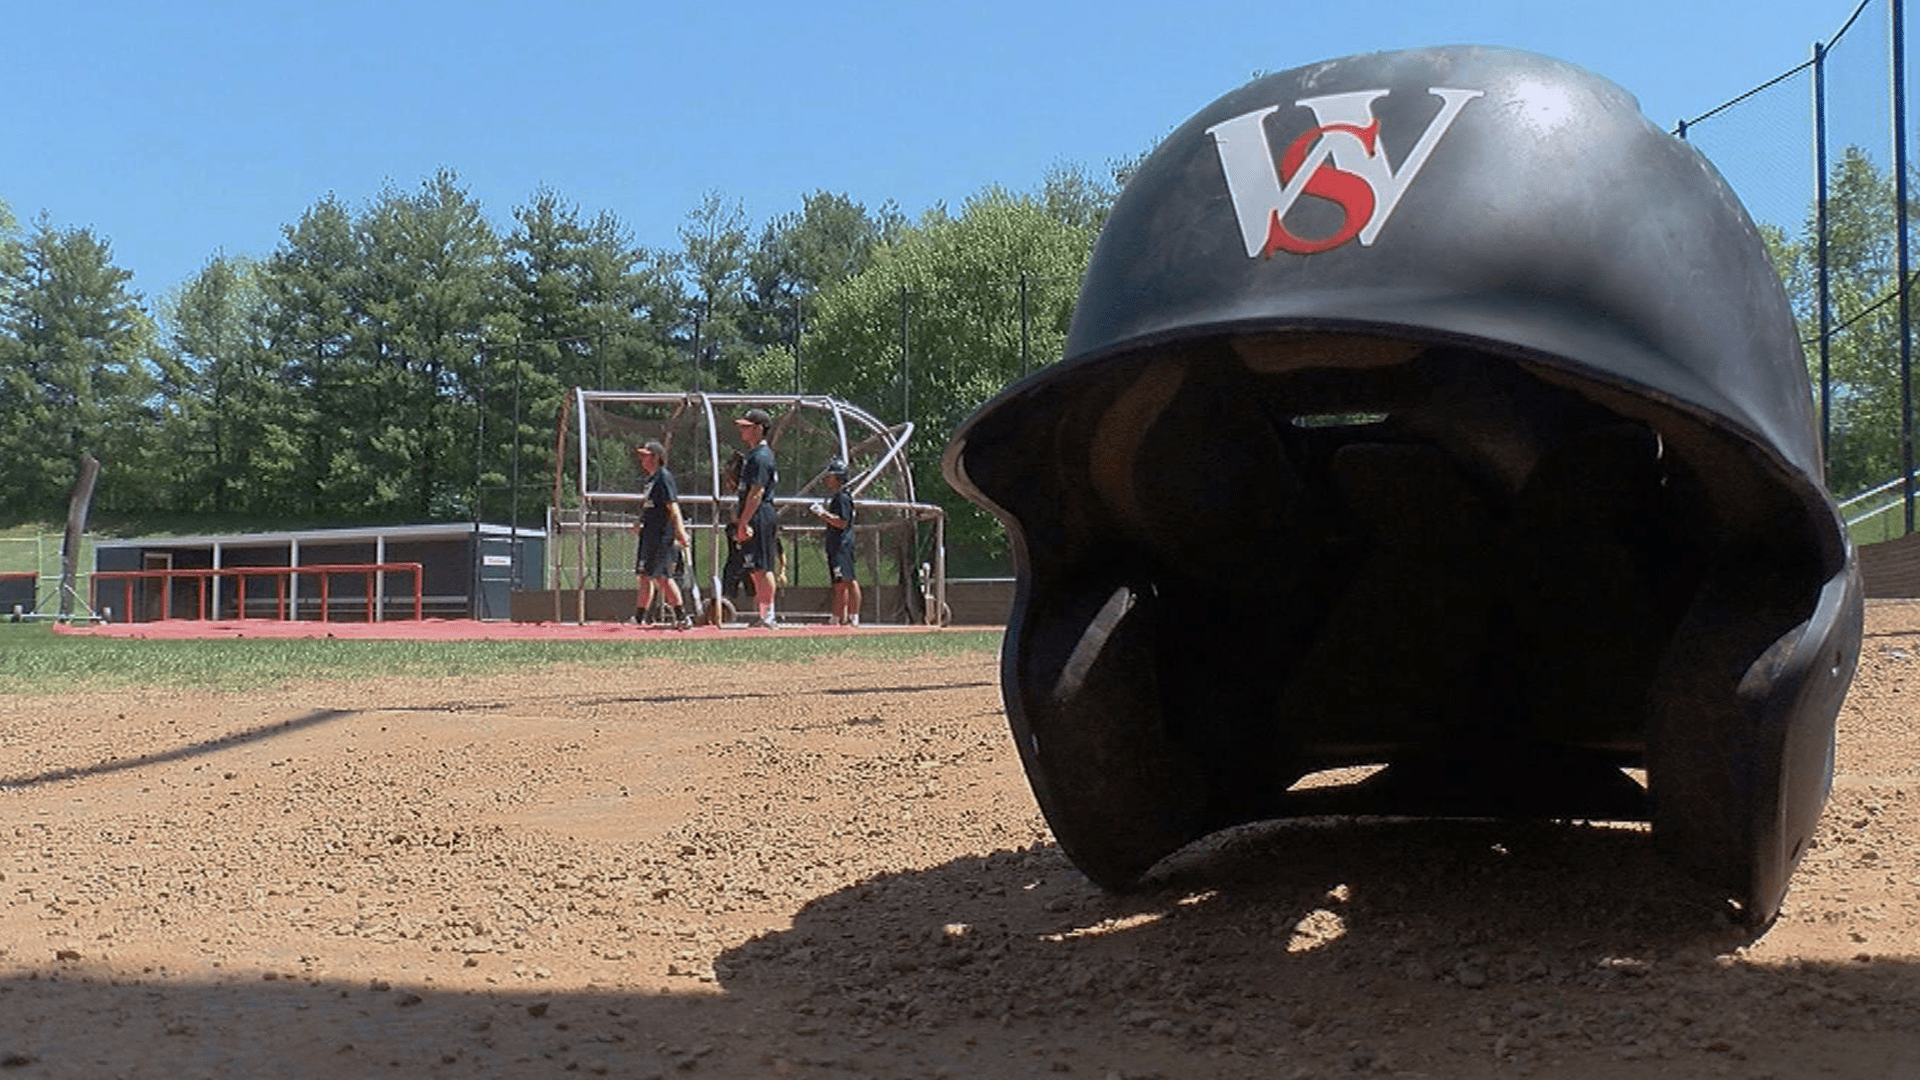 WALTERS_STATE_BASEBALL_HELMET_SMALL_1557970674860.png